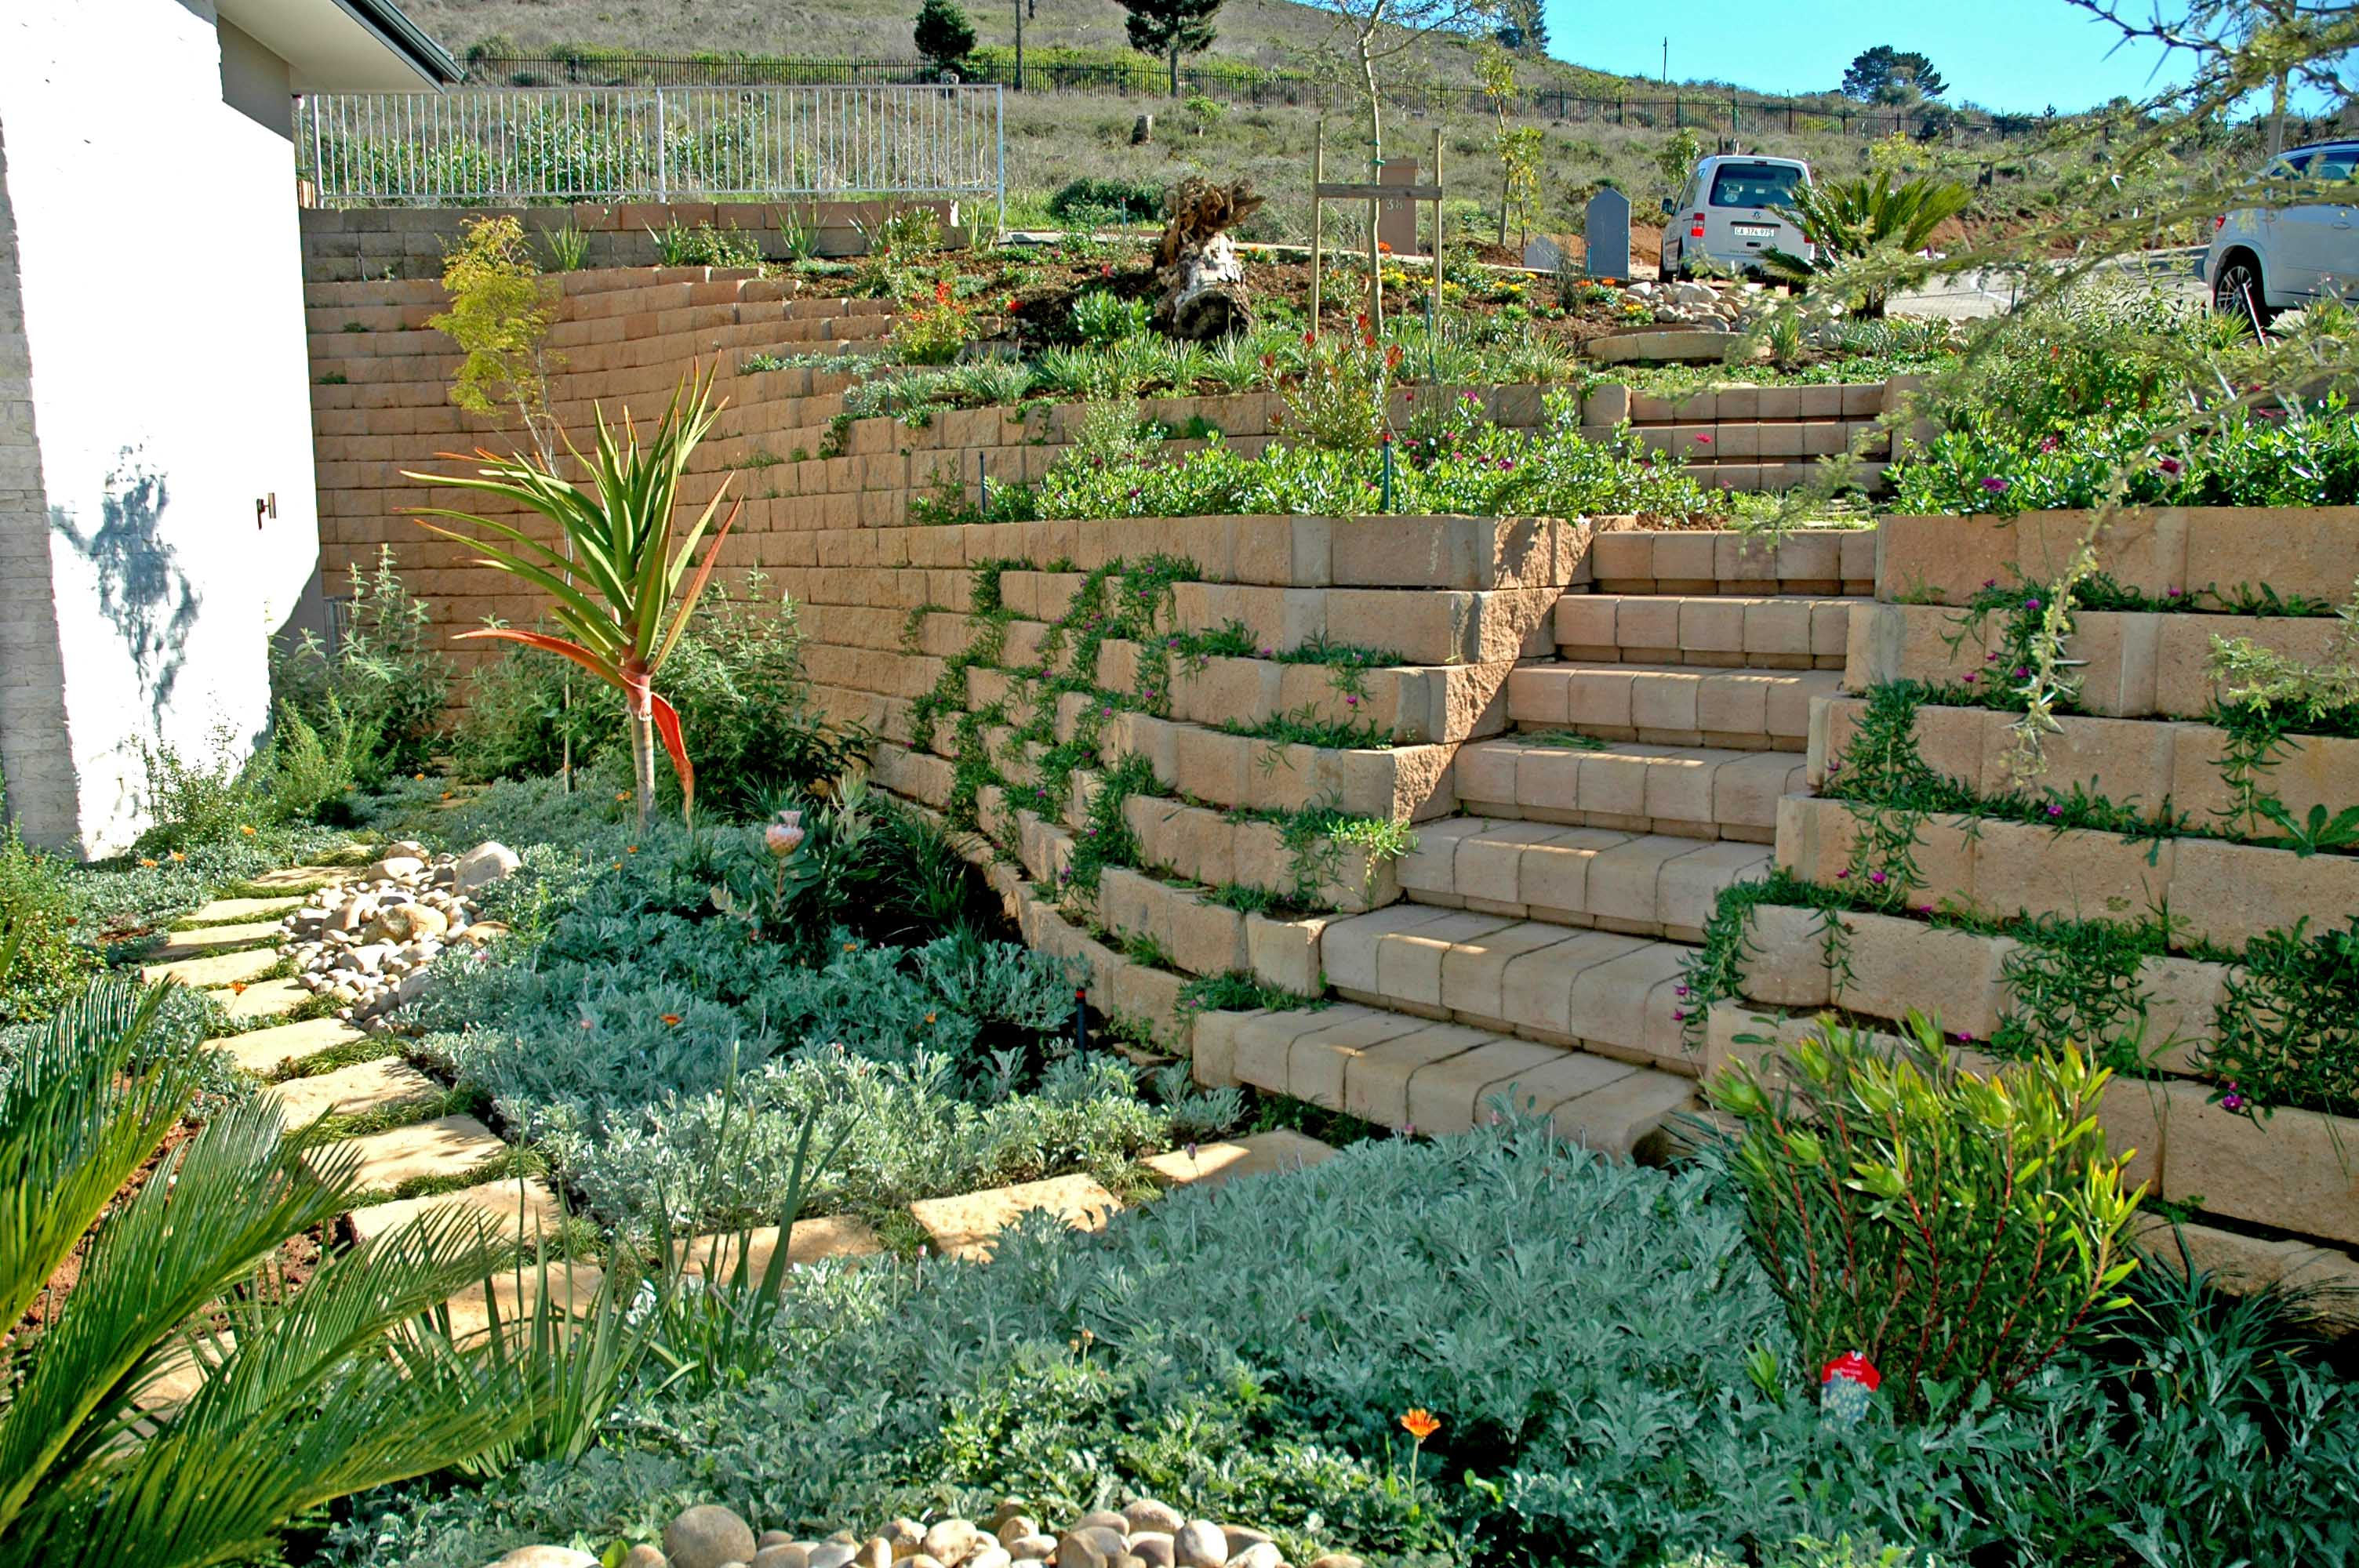 Beautifully landscaped Terraforce garden wall